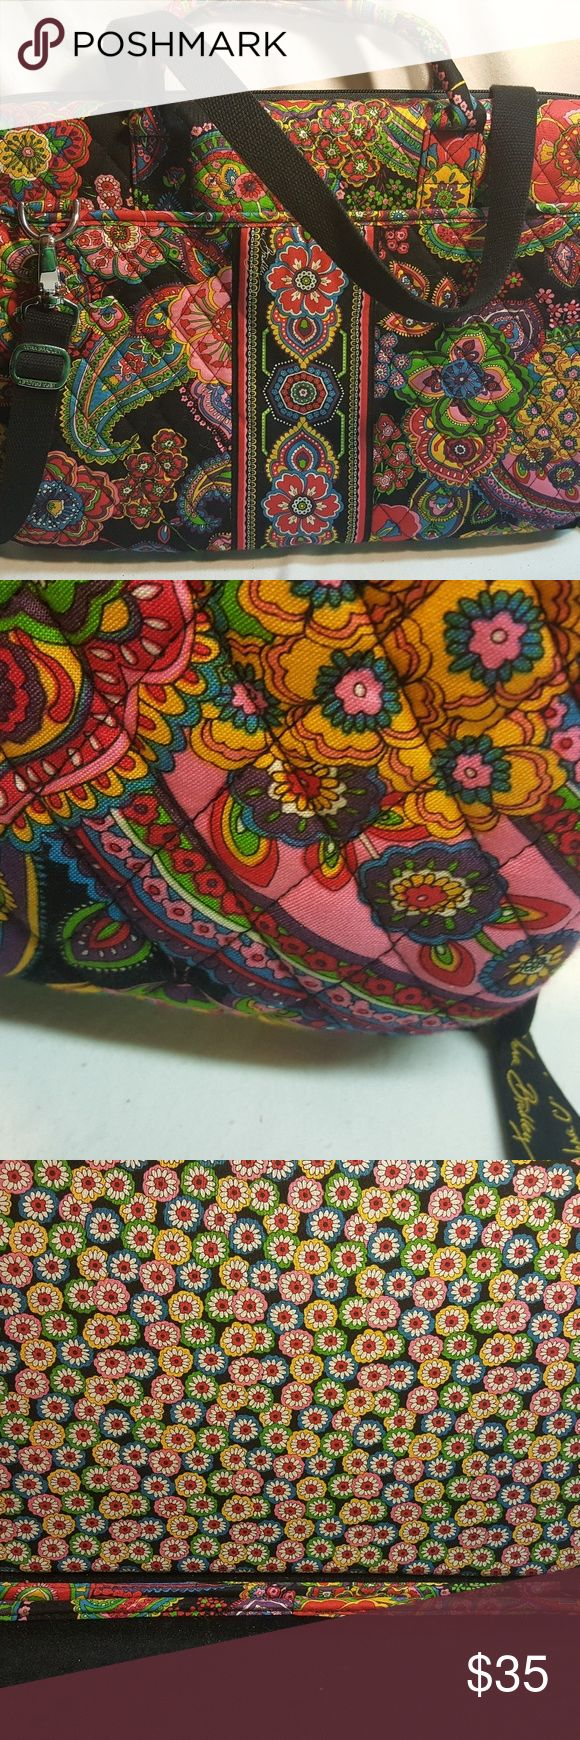 Vera Bradley laptop bag This a very pretty bag for your laptop it has no wear it's never been used very gorgeous prints inside and out Vera Bradley Bags Laptop Bags